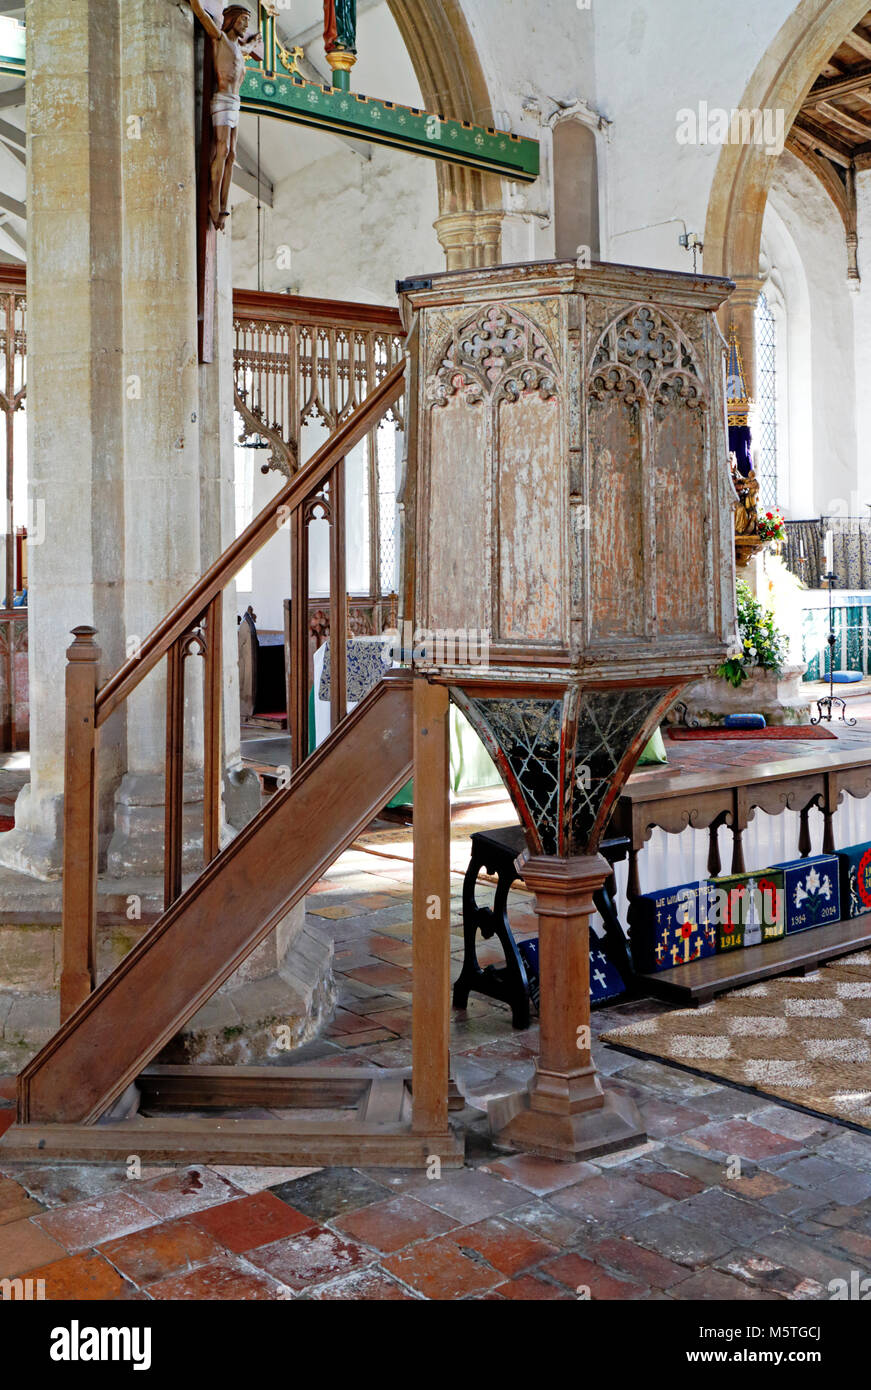 A view of the 15th century wineglass pulpit in the Church of Our Lady St Mary at South Creake, Norfolk, England, - Stock Image